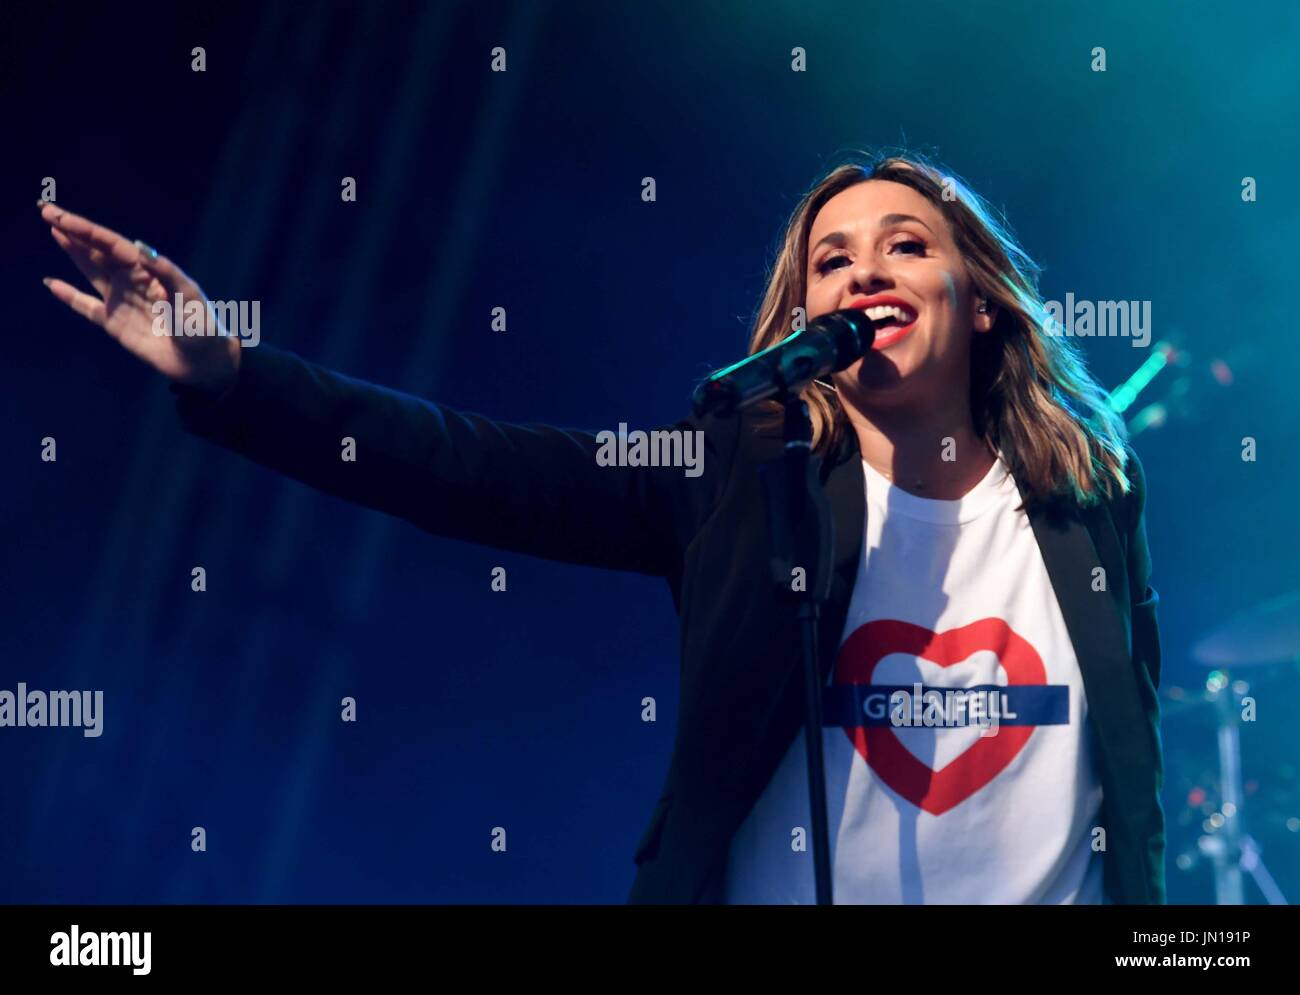 All Saints perform at Camp Bestival, Dorset, UK Credit: Finnbarr Webster/Alamy Live News - Stock Image